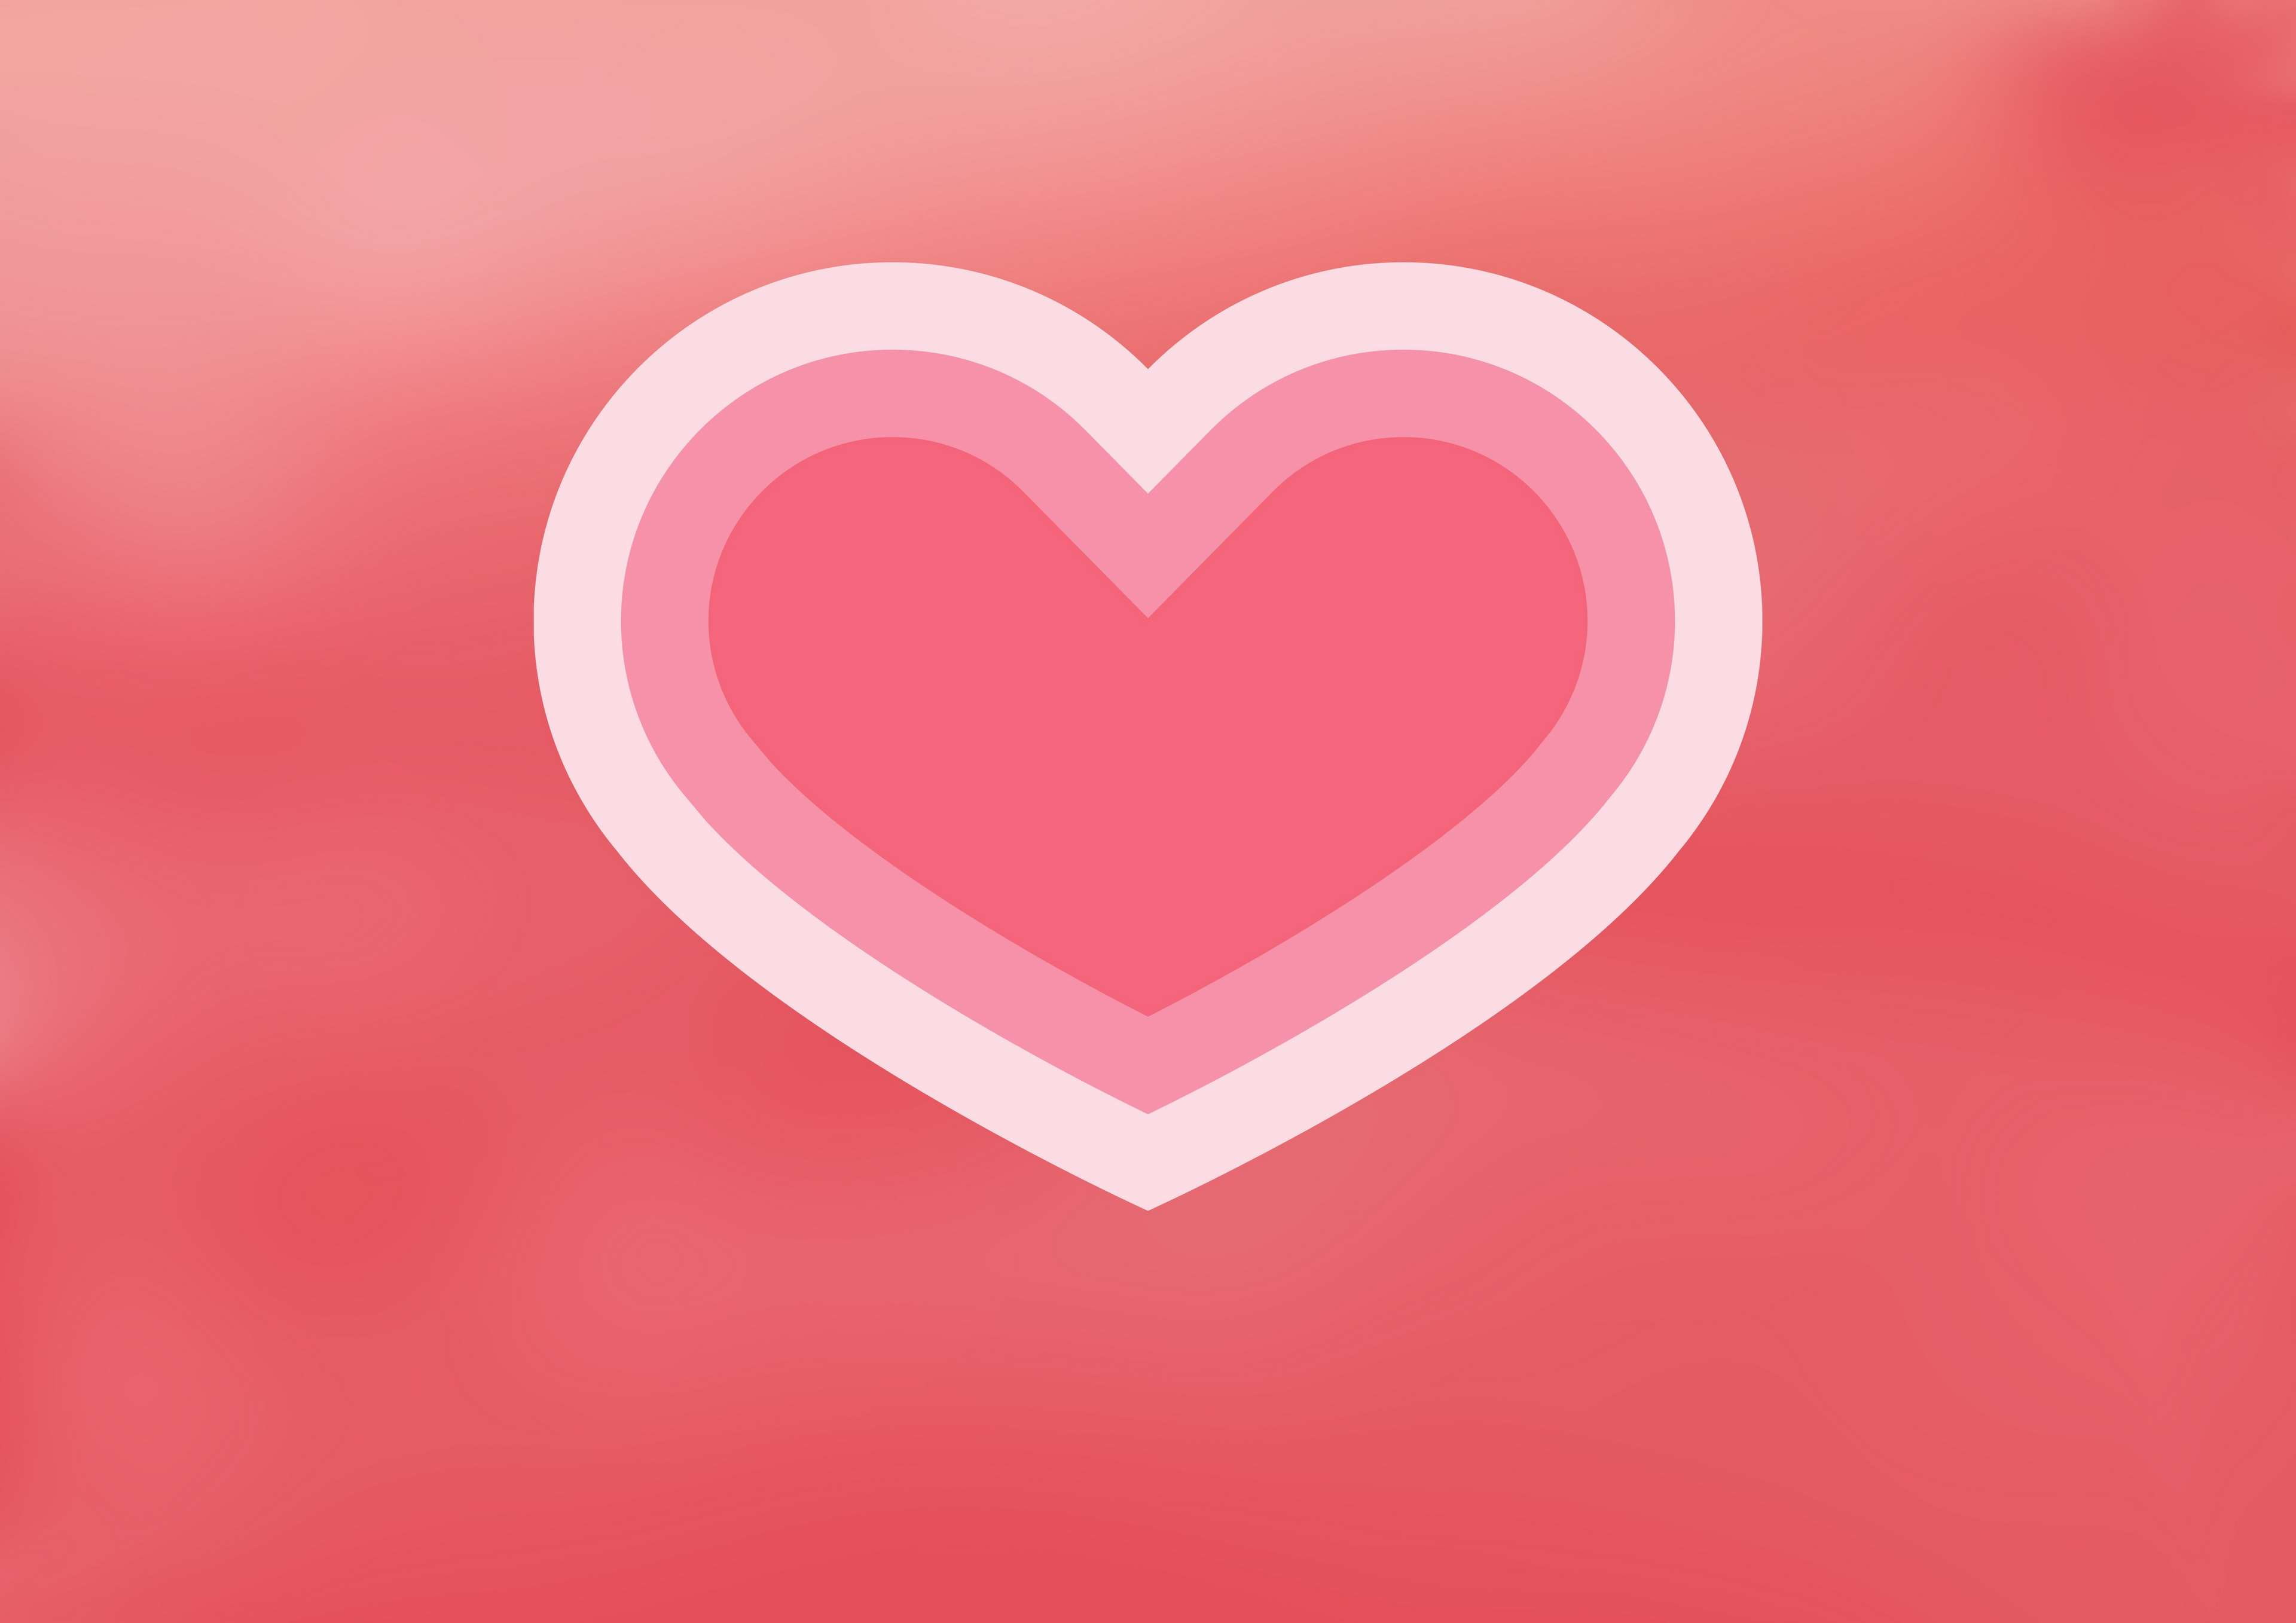 i love you wallpaper,heart,pink,red,love,valentine's day